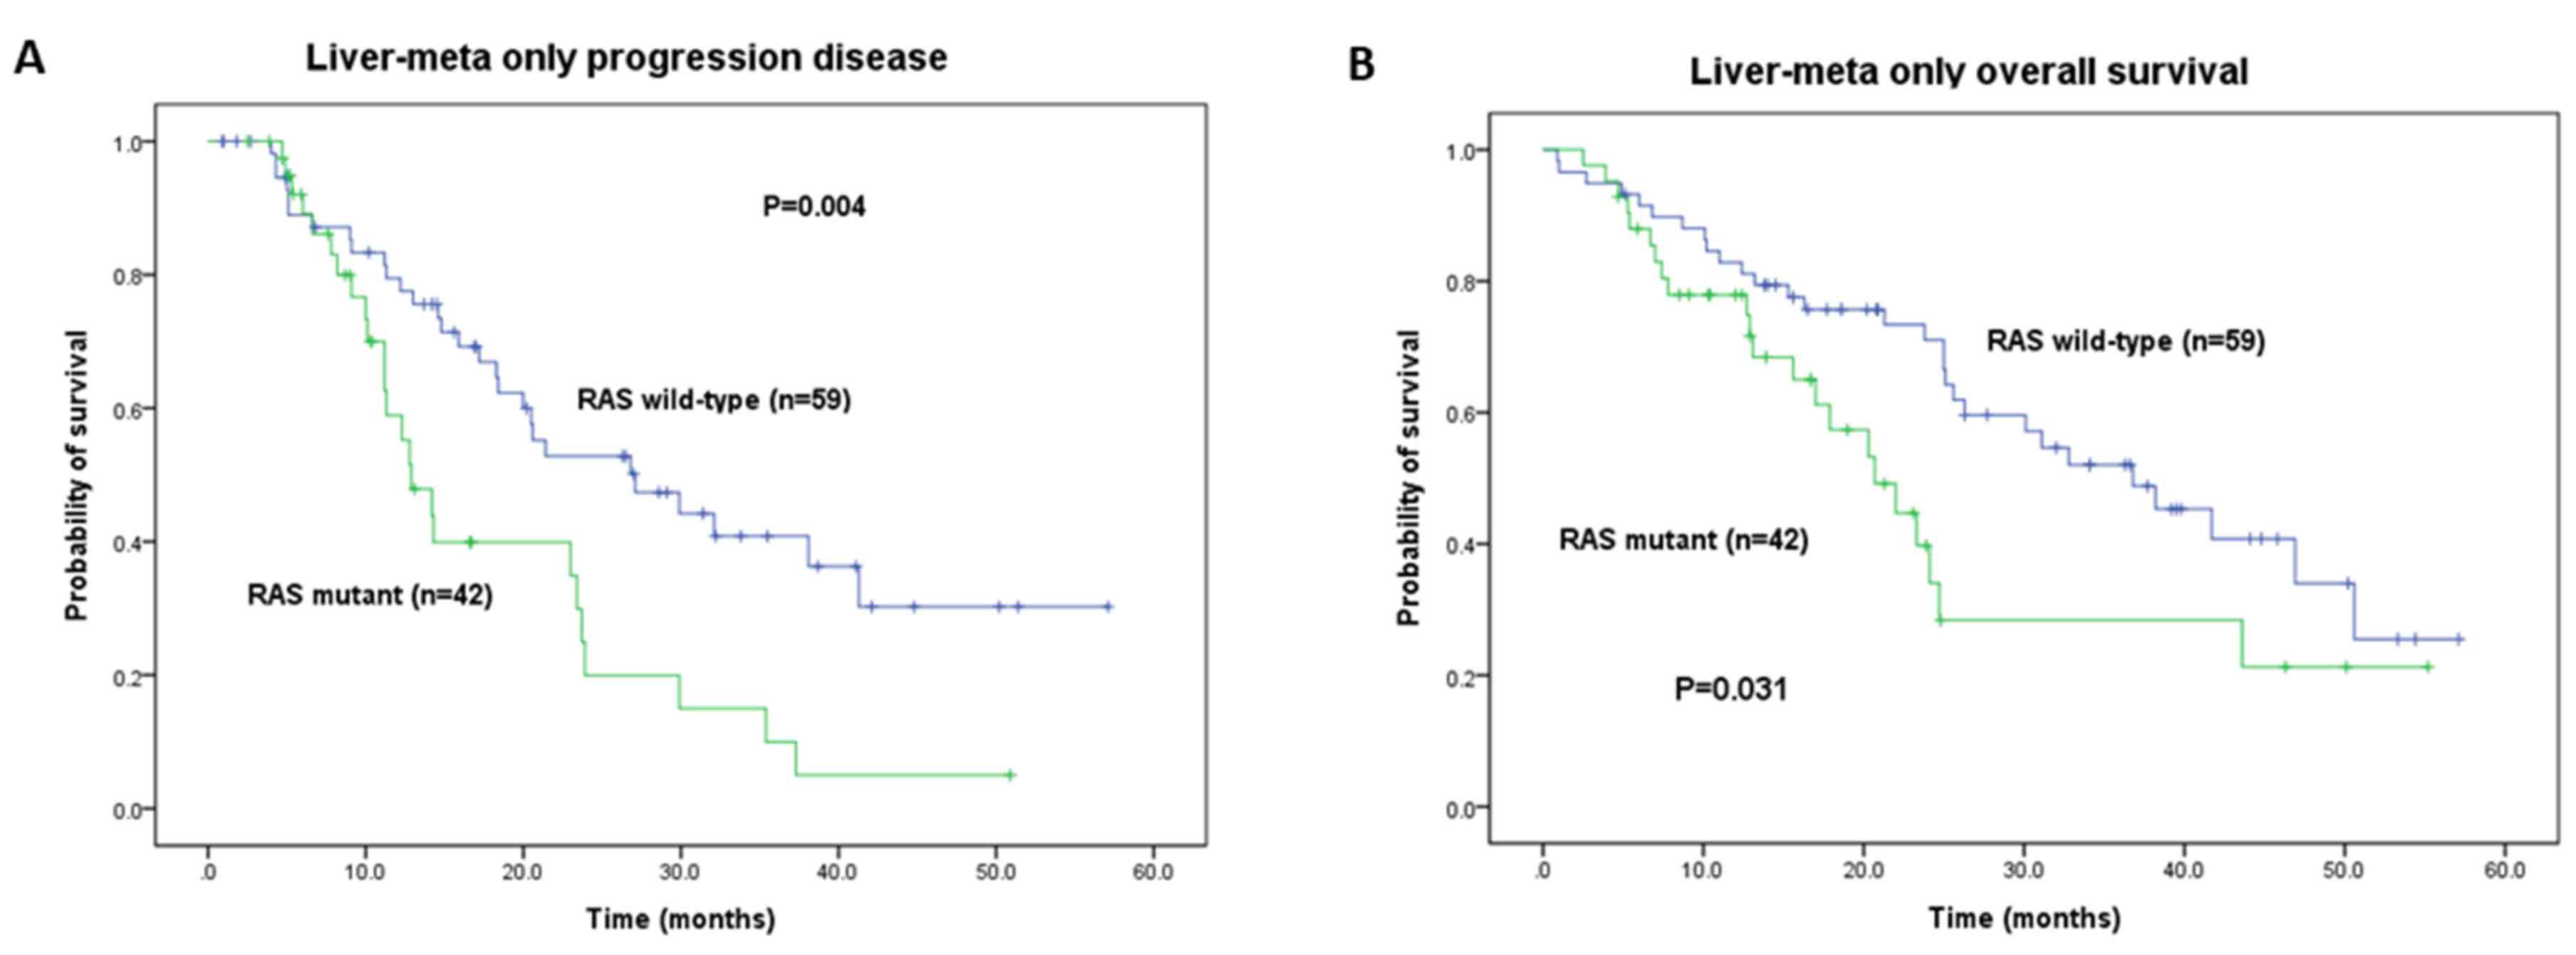 Effect Of Kras And Nras Mutations On The Prognosis Of Patients With Synchronous Metastatic Colorectal Cancer Presenting With Liver Only And Lung Only Metastases